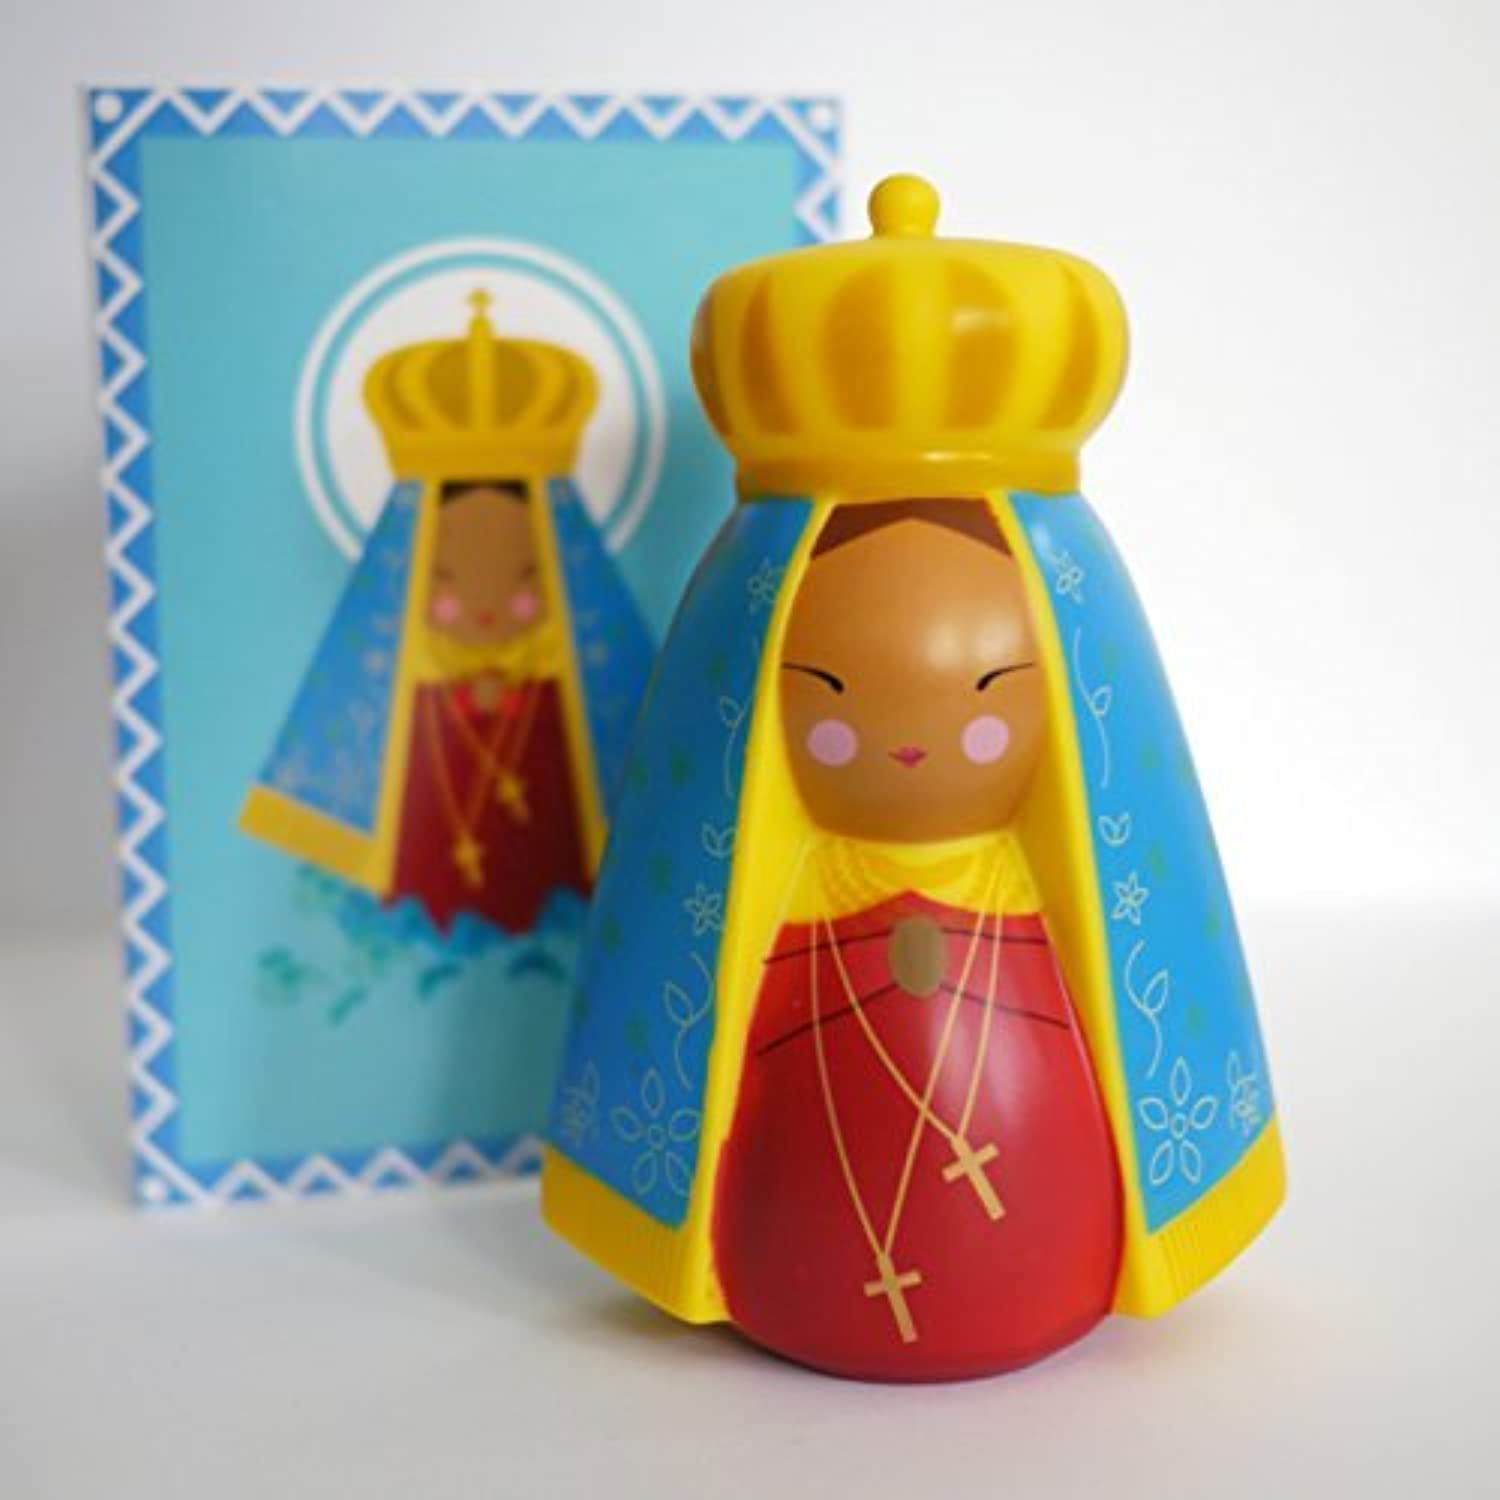 Our Lady of Aparecida, Brazil Collectible Vinyl Doll by Shining Light Dolls